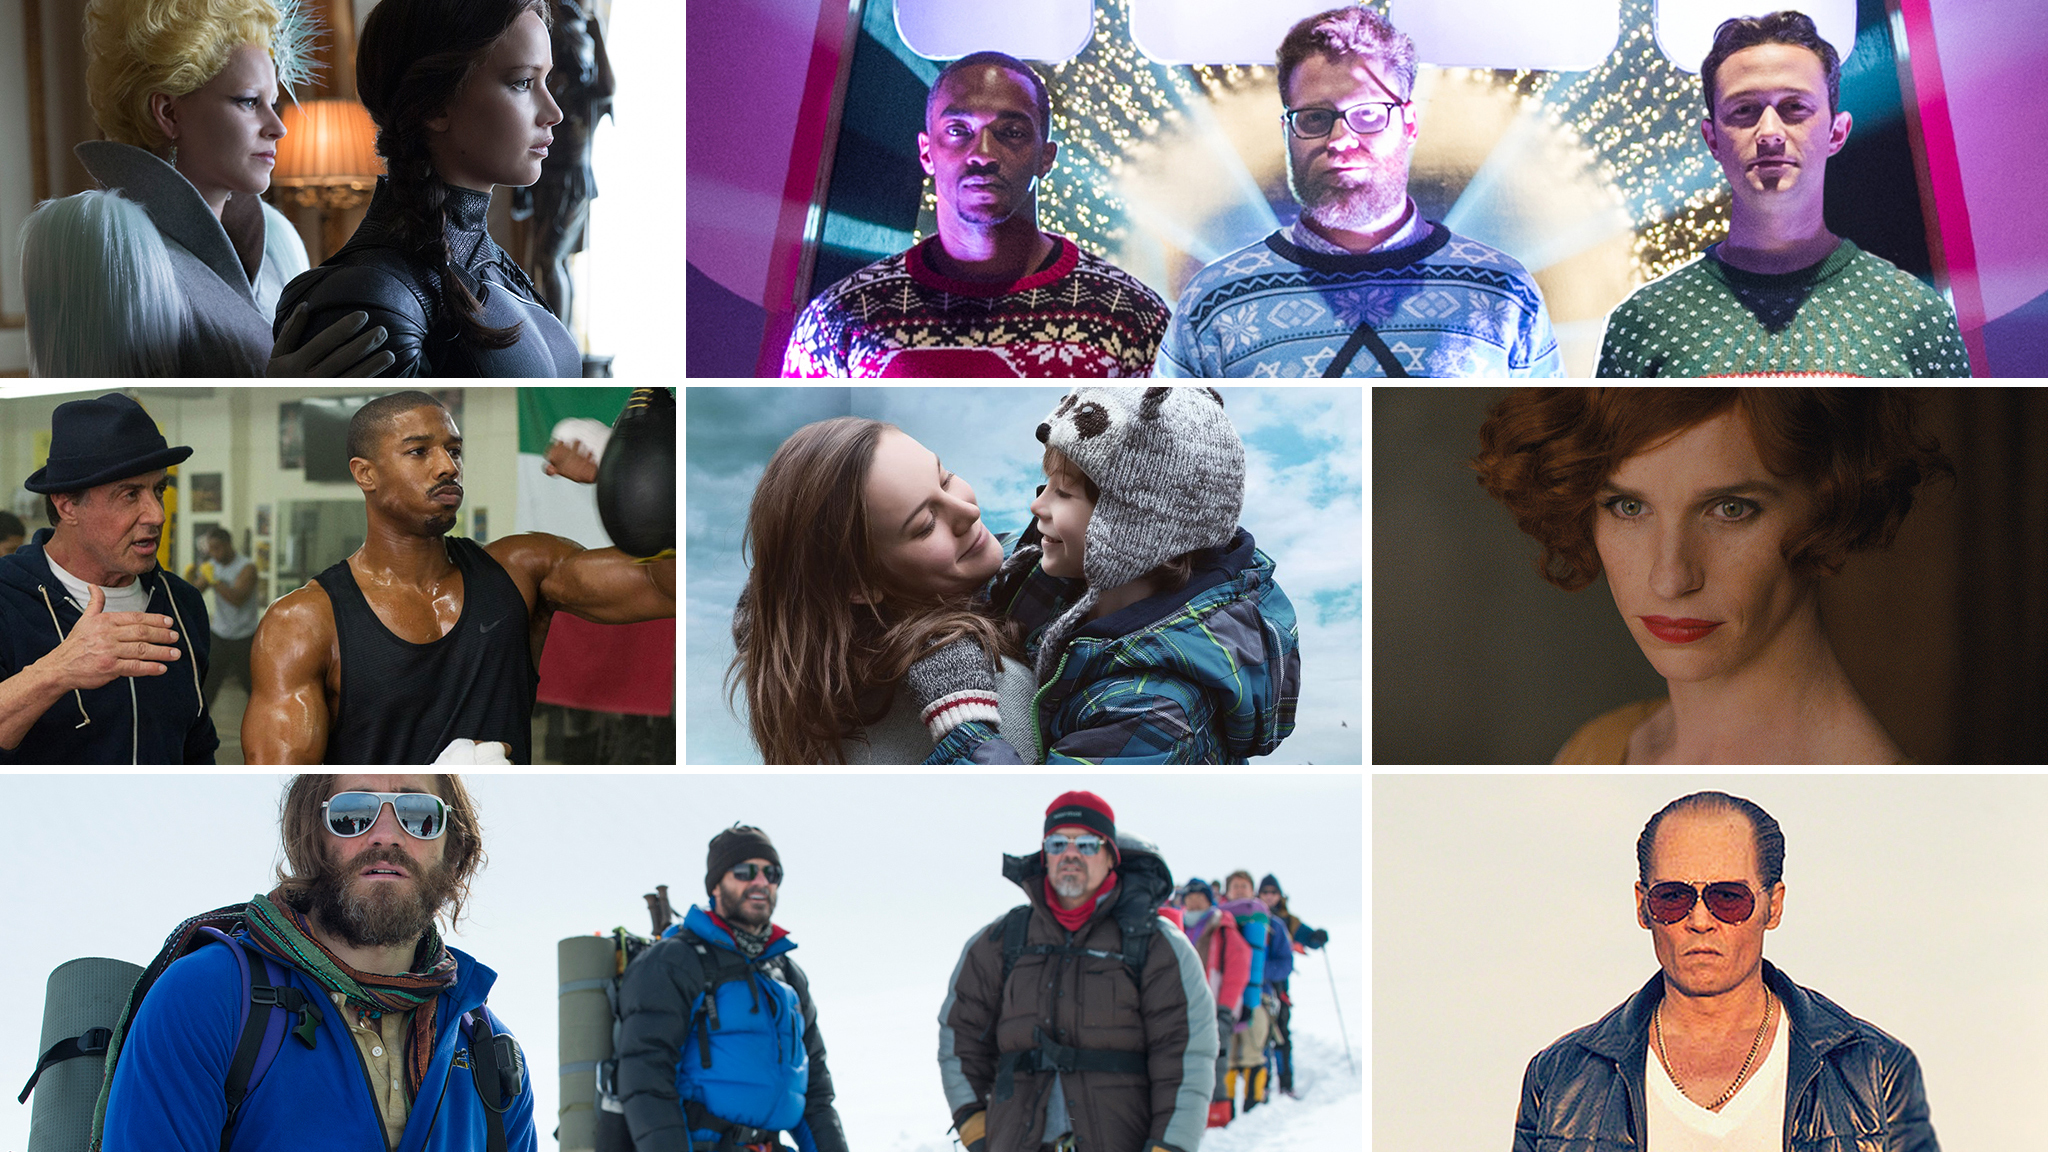 The 30 best upcoming movies to see this fall